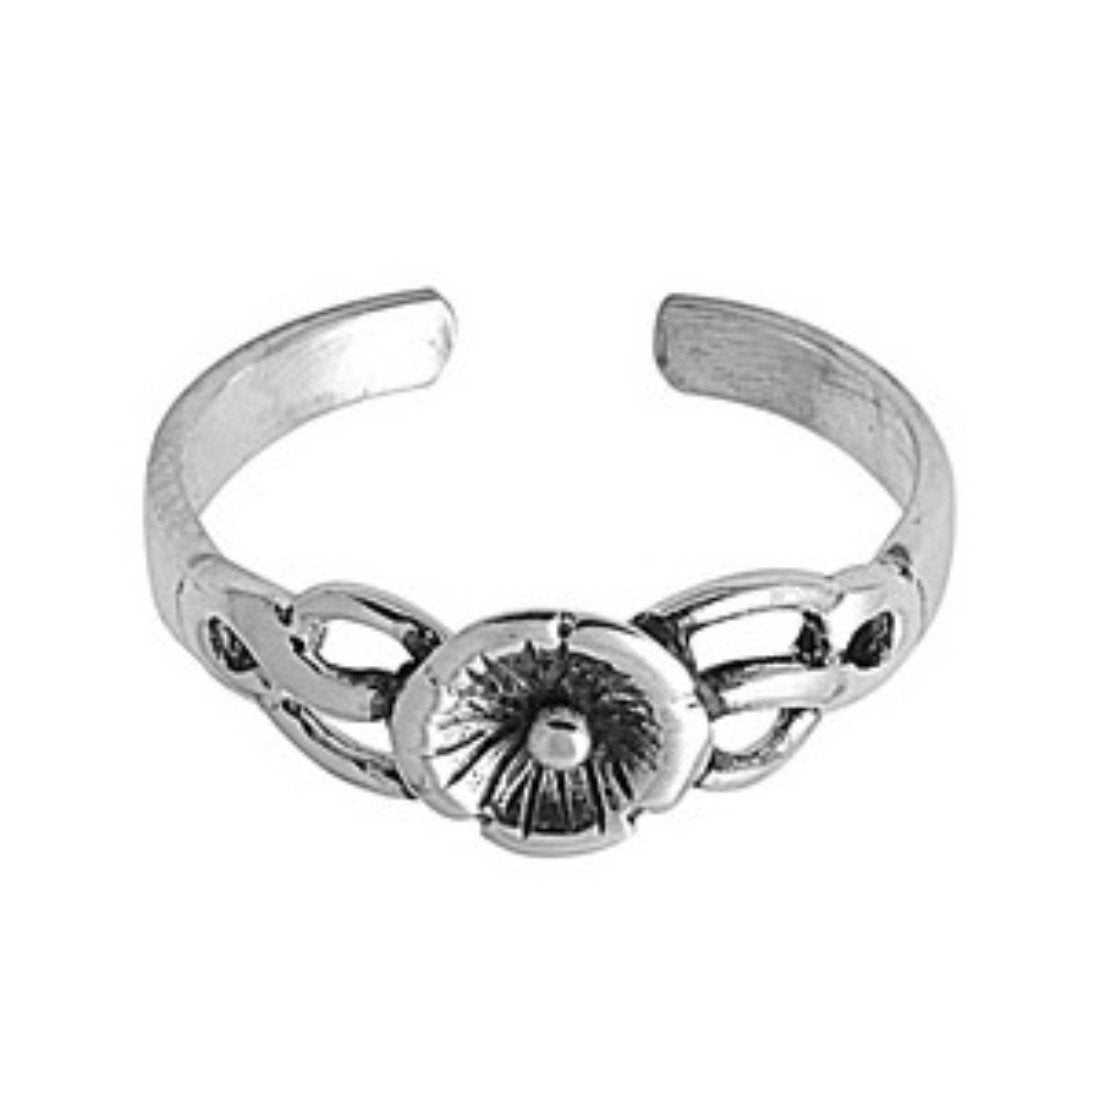 Plumeria Silver Toe Ring Band Adjustable 925 Sterling Silver (6mm)